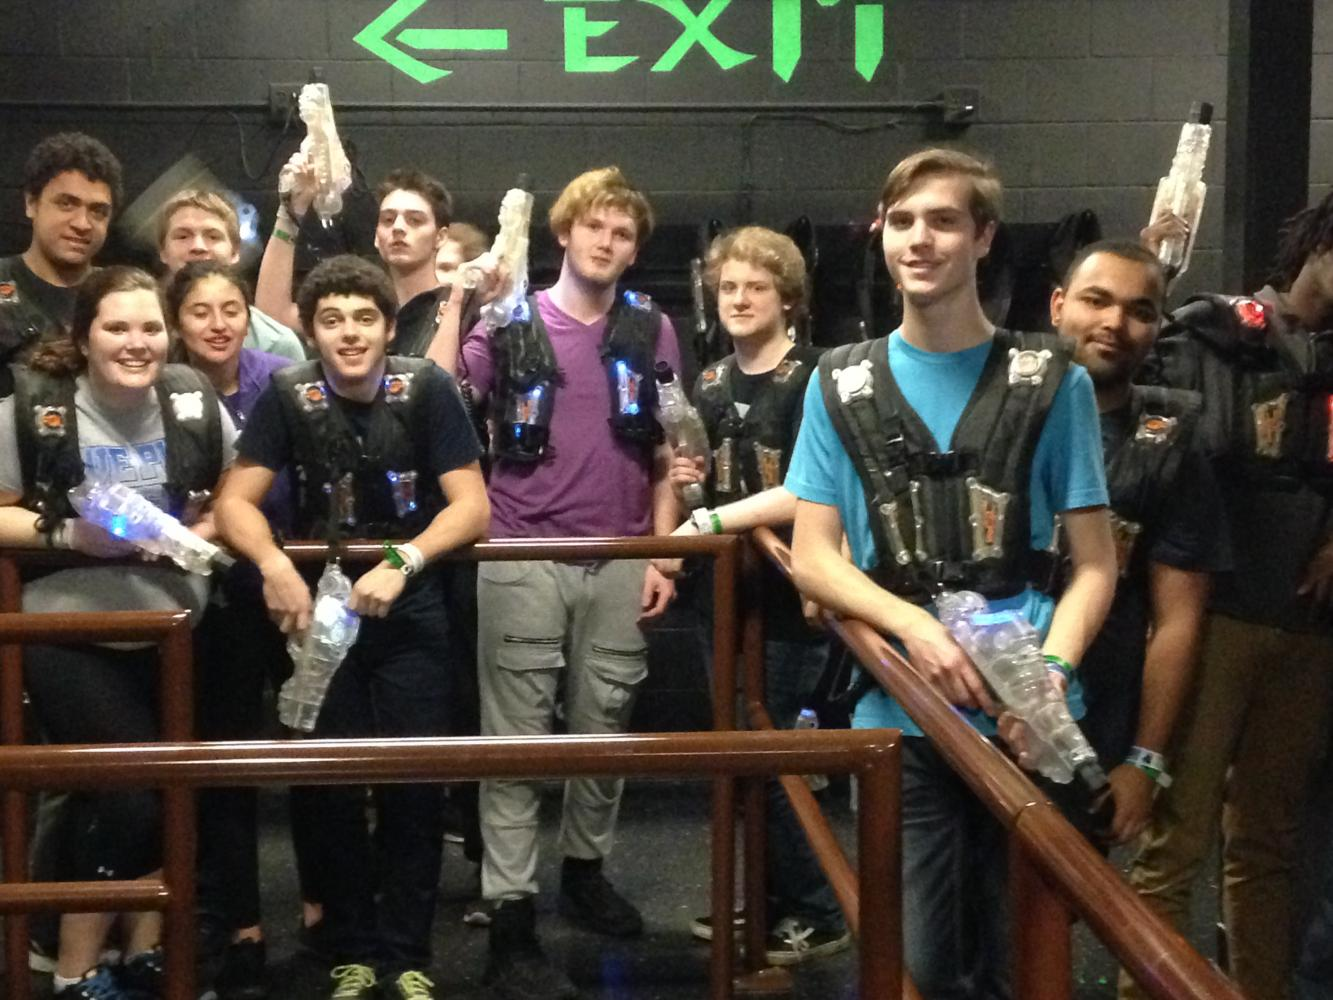 Members of the Senior Class reluctantly pose immediately after finishing a tiring round of Lazer Tag inside the Kalahari Resort.